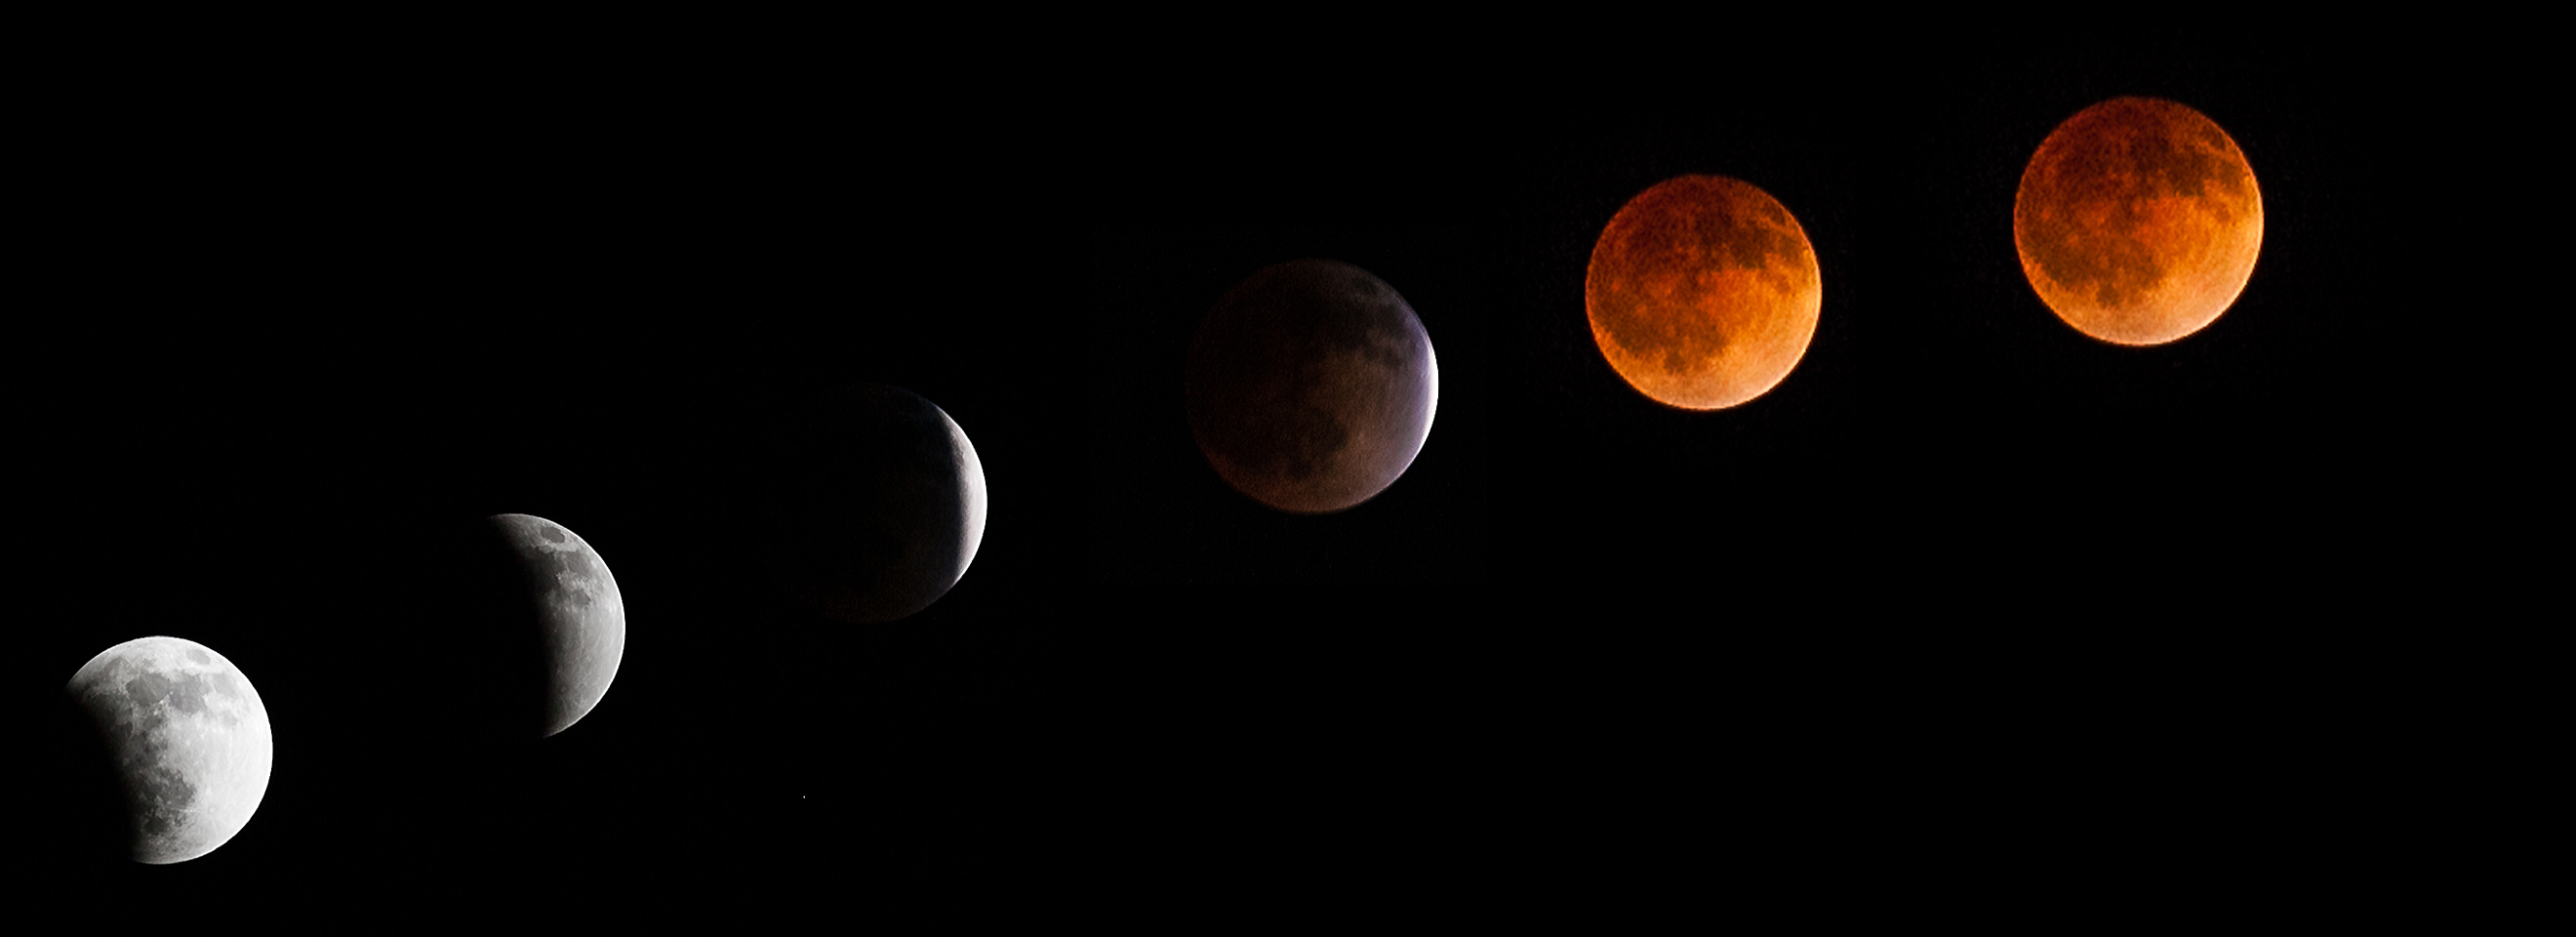 Total Lunar Eclipse of April 15, 2014 Series: Tyler Leavitt